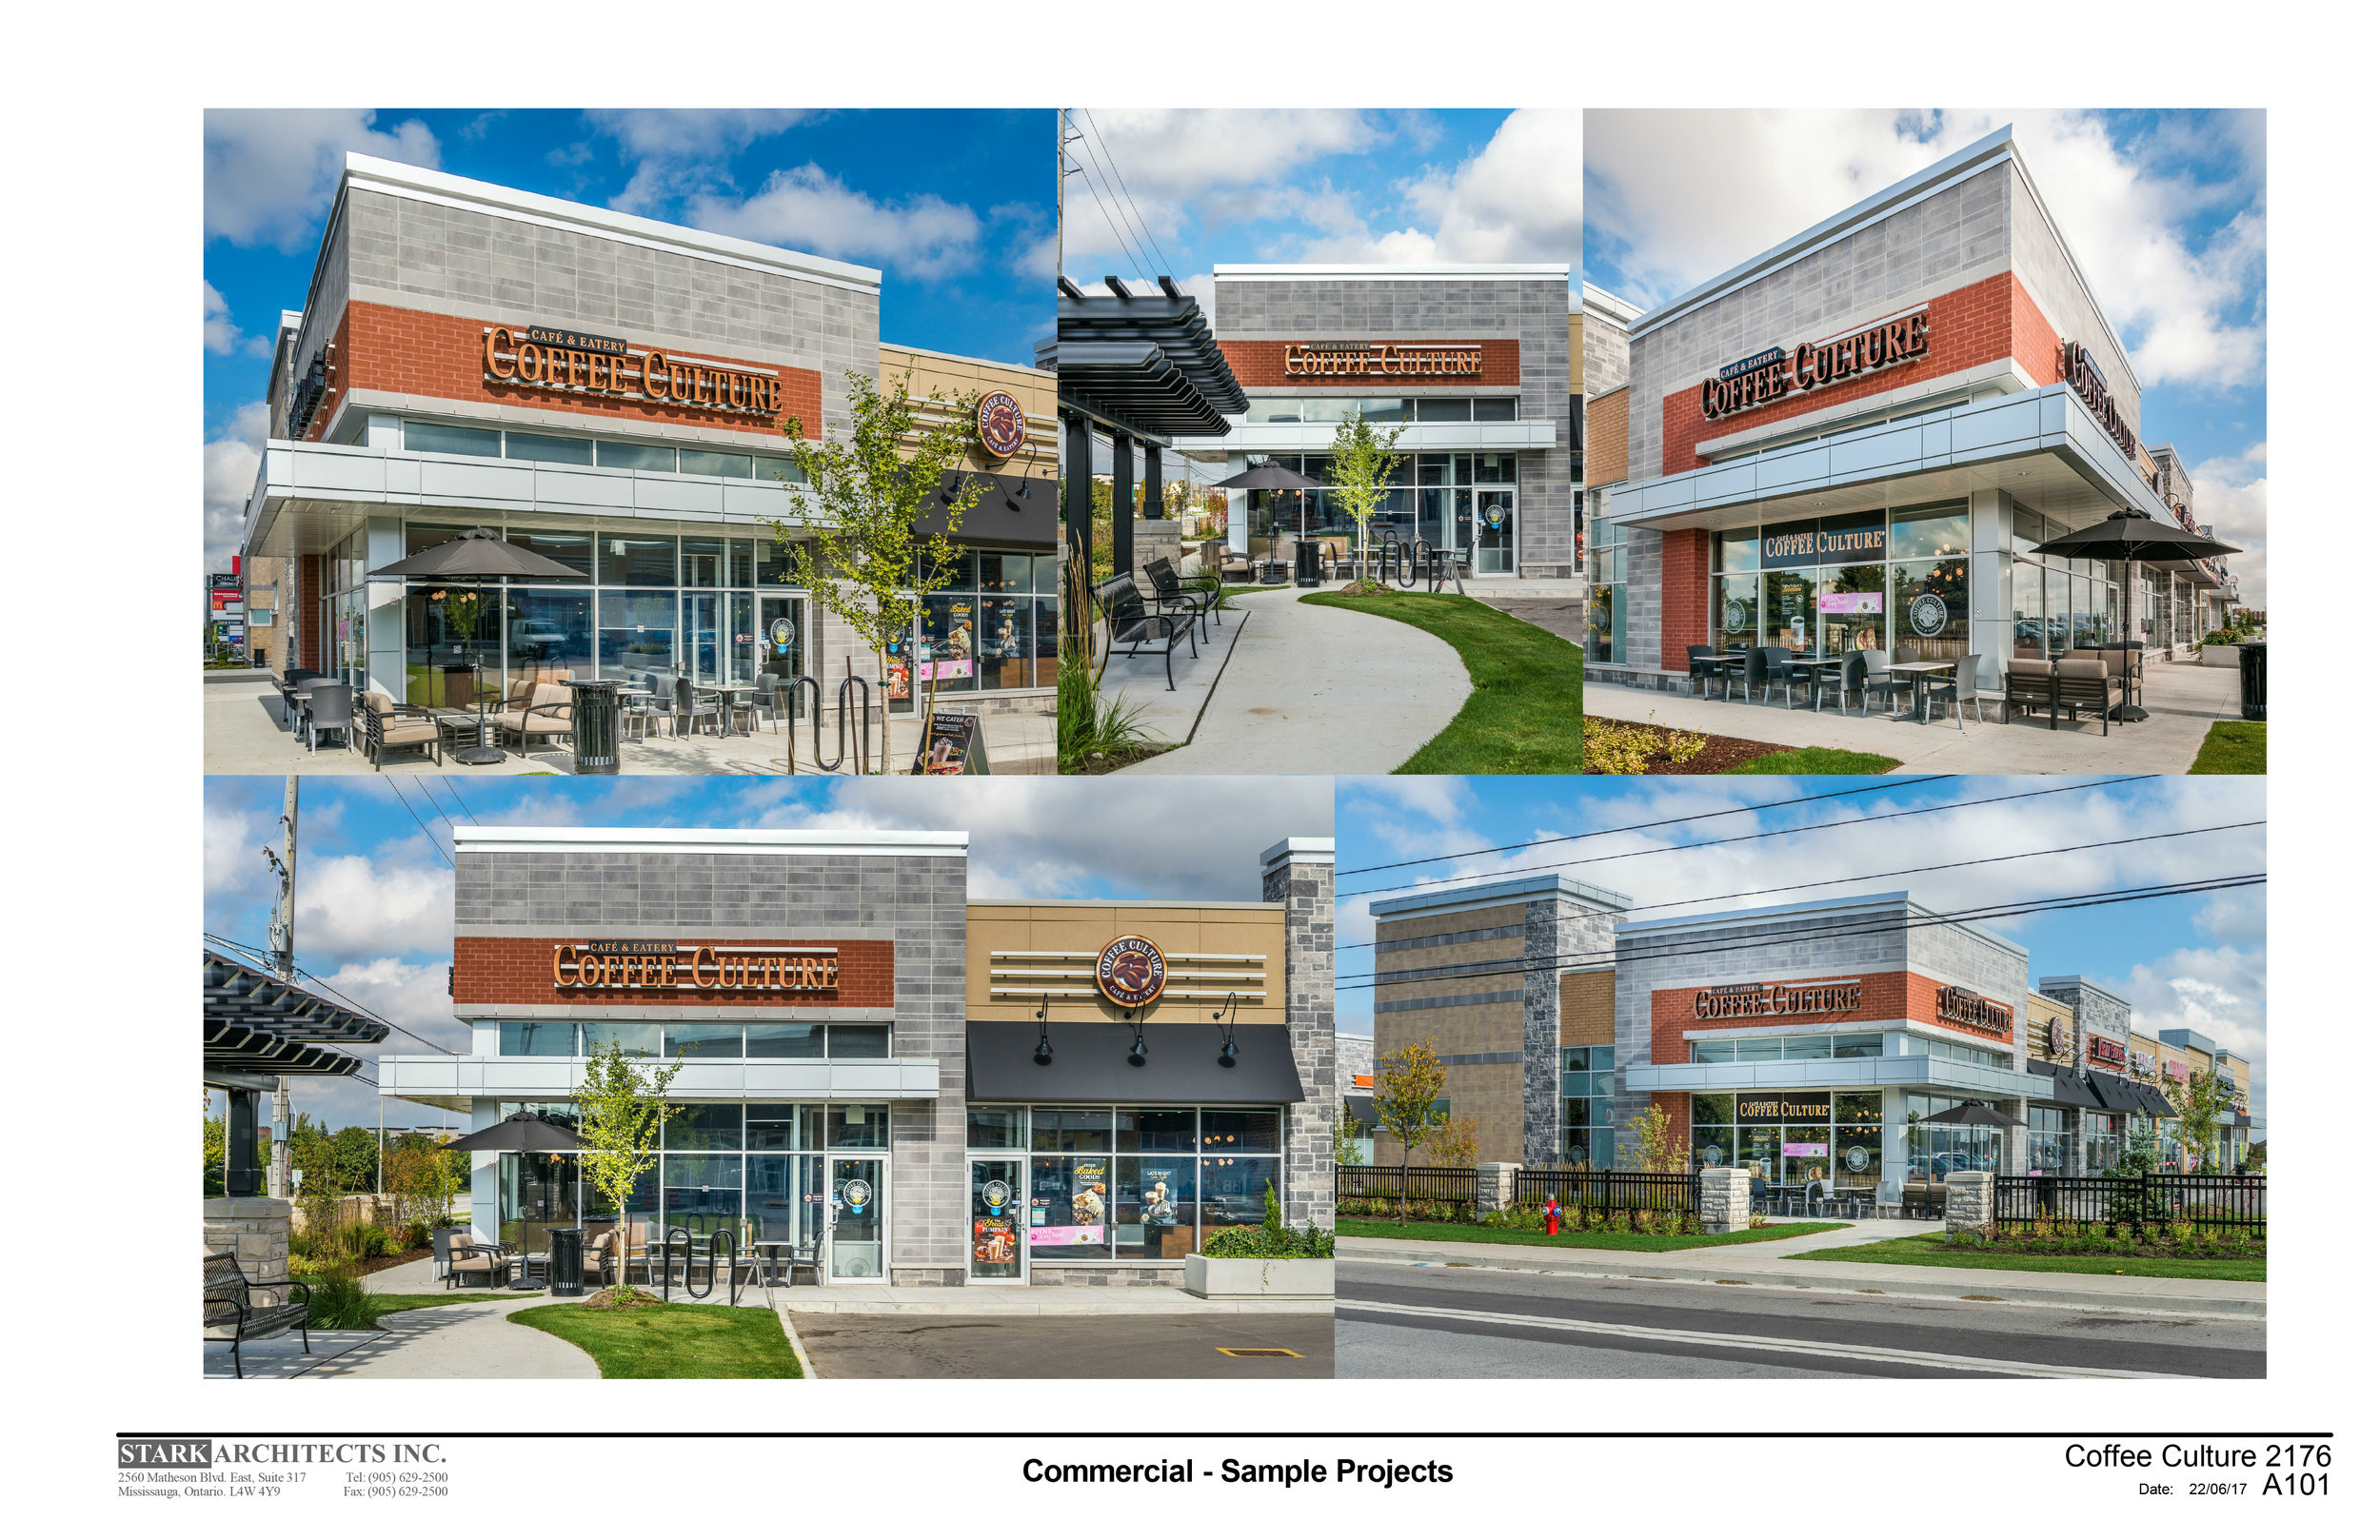 STARK ARCHITECTS INC - SAMPLE PROJECTS - COMMERCIAL - 22-06-17 - A101.jpg